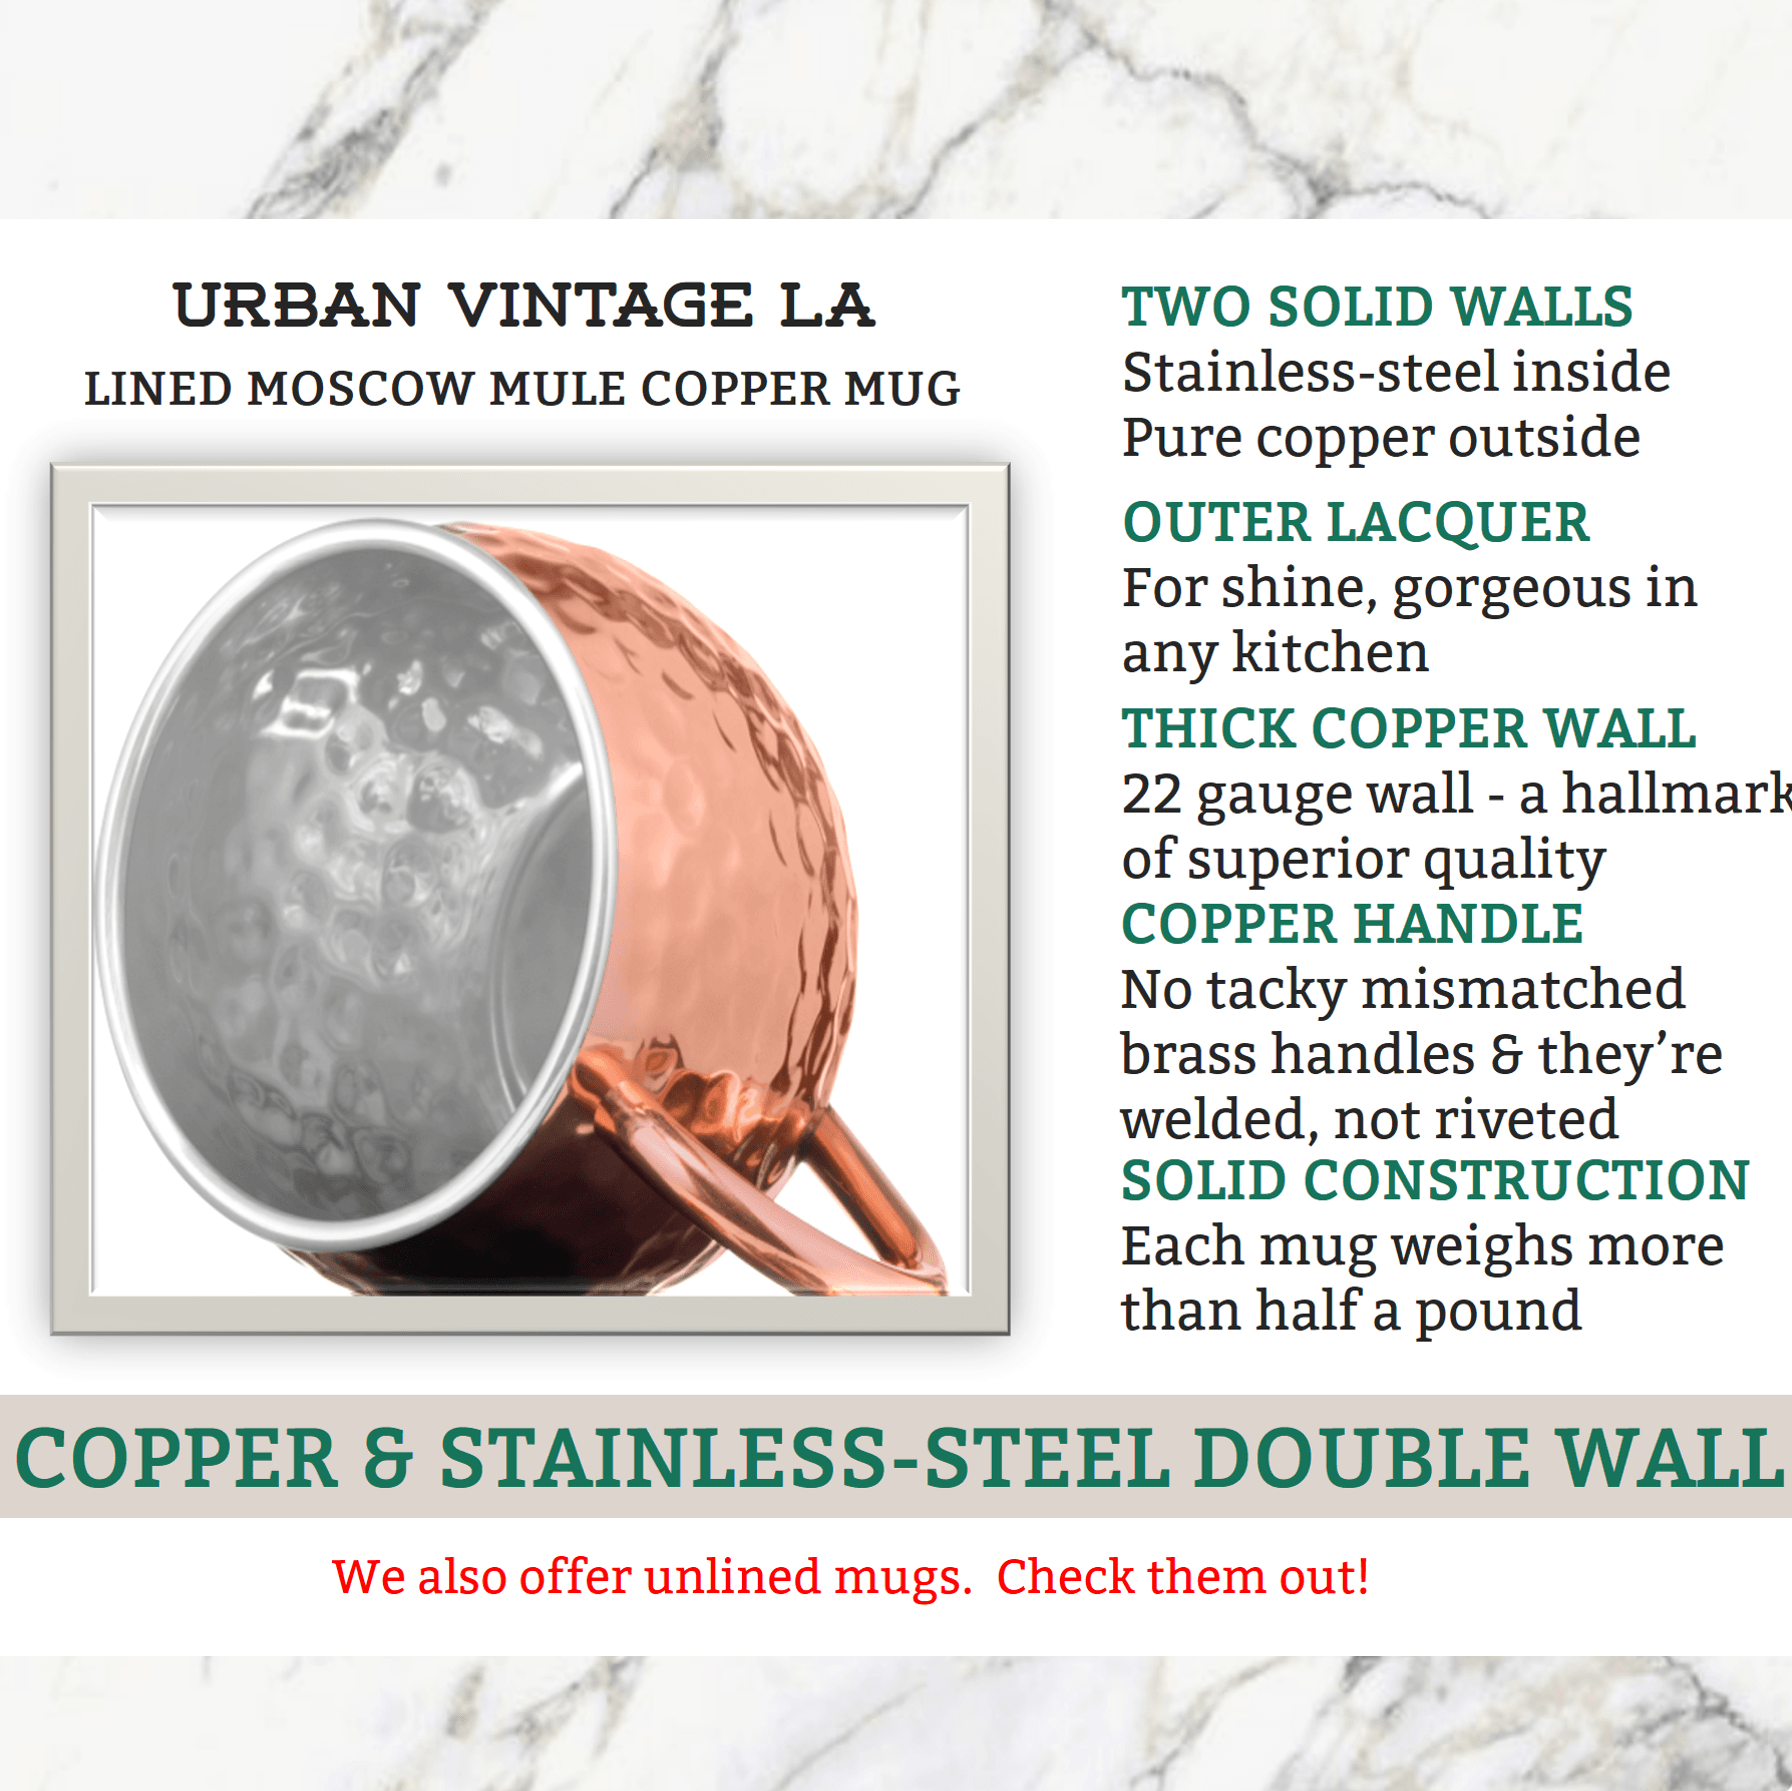 Urban Vintage LA Moscow Mule Copper Mug With Double Wall Inner Stainless-Steel and Outer Wall of Solid Copper